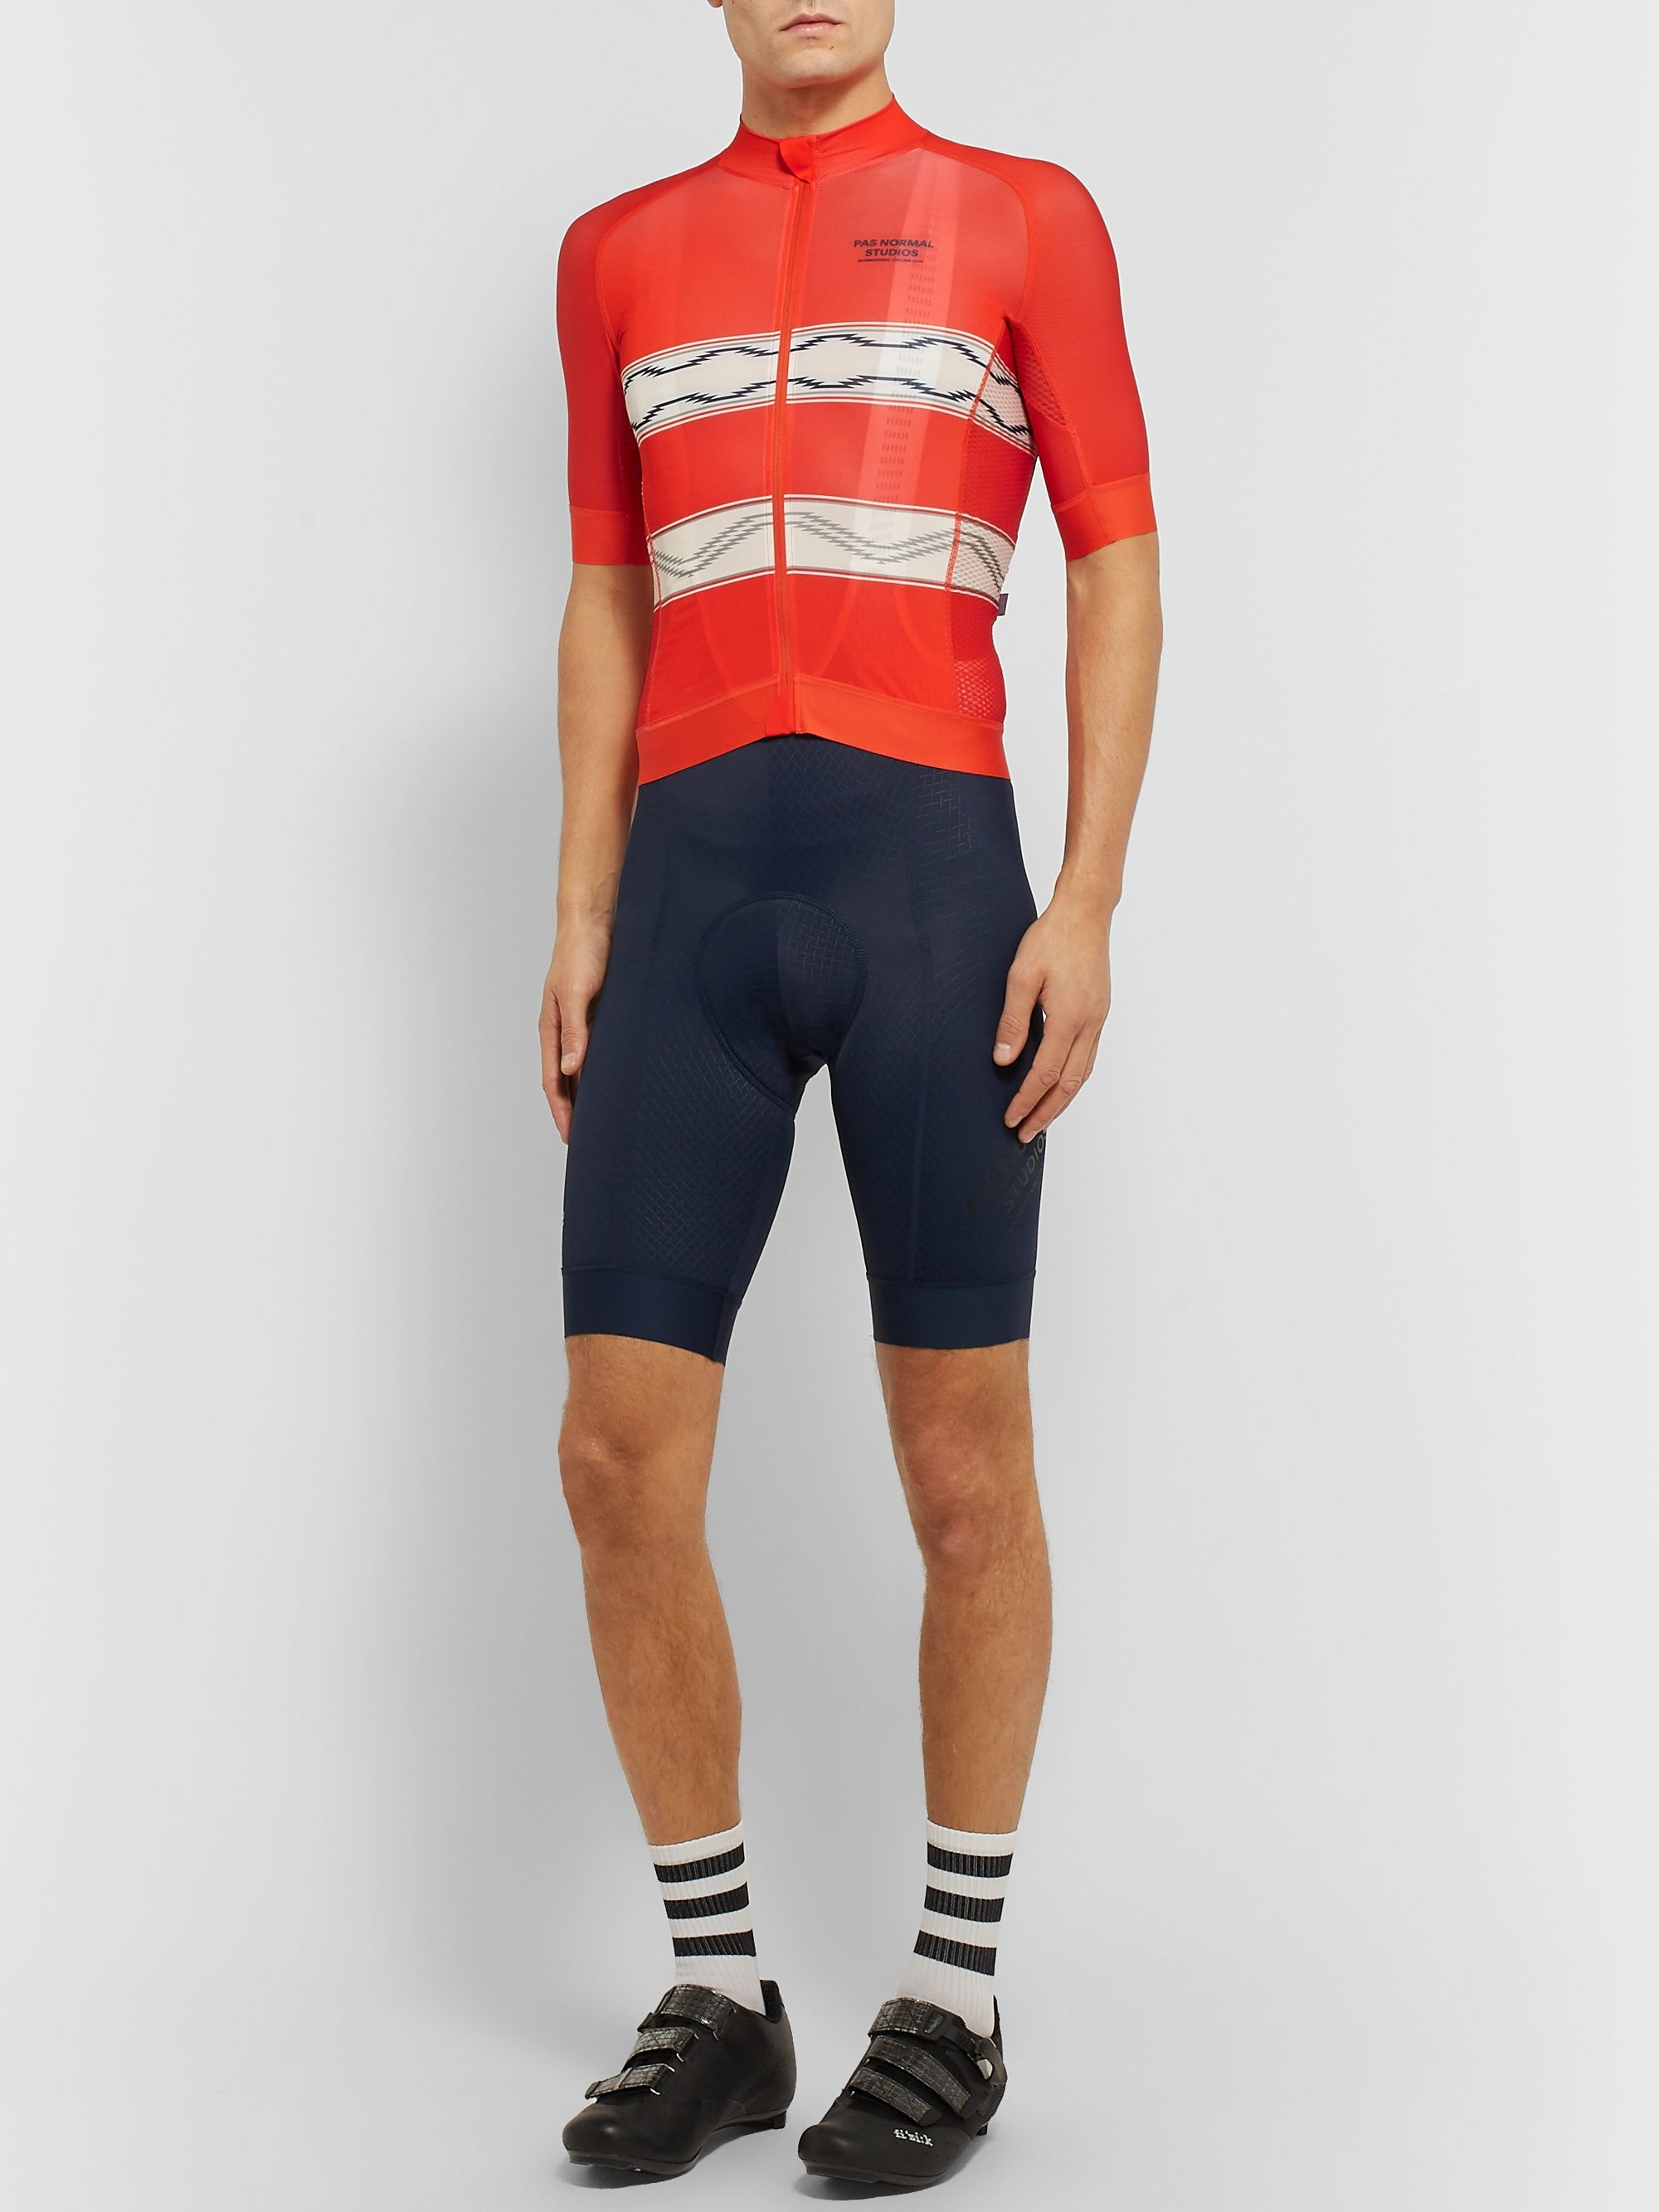 Pas Normal Studios Solitude Printed Cycling Jersey